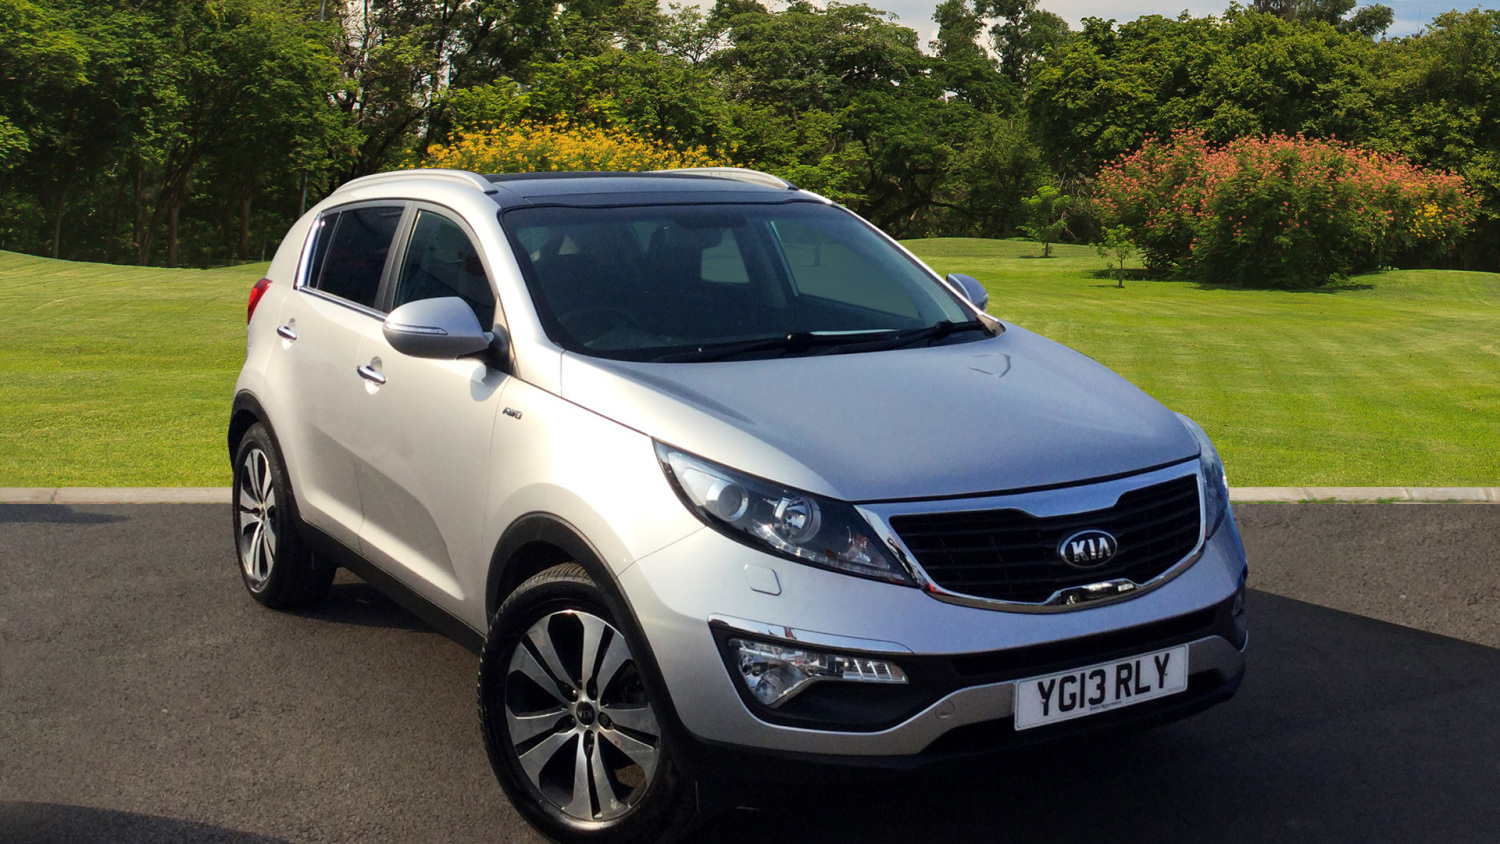 used kia sportage 2 0 crdi kx 3 5dr auto sat nav diesel. Black Bedroom Furniture Sets. Home Design Ideas